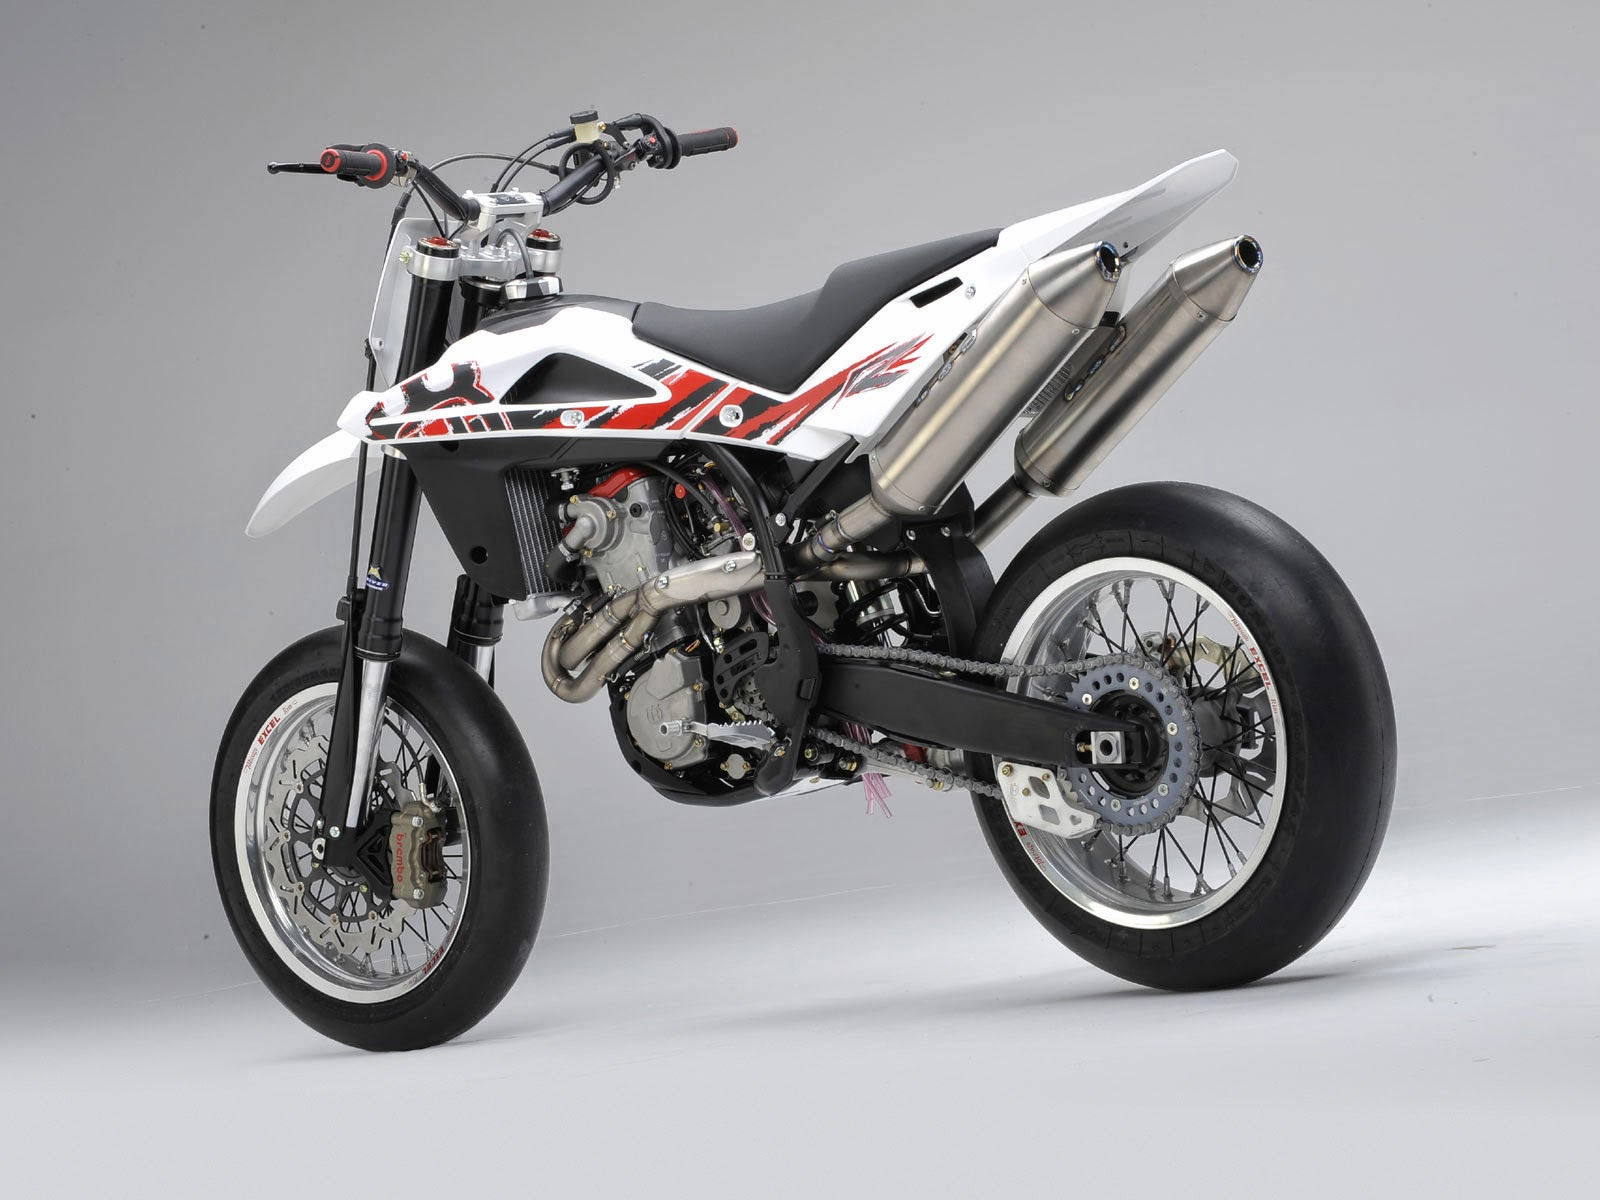 Husqvarna SMR450 Sports Bikes HD Wallpapers